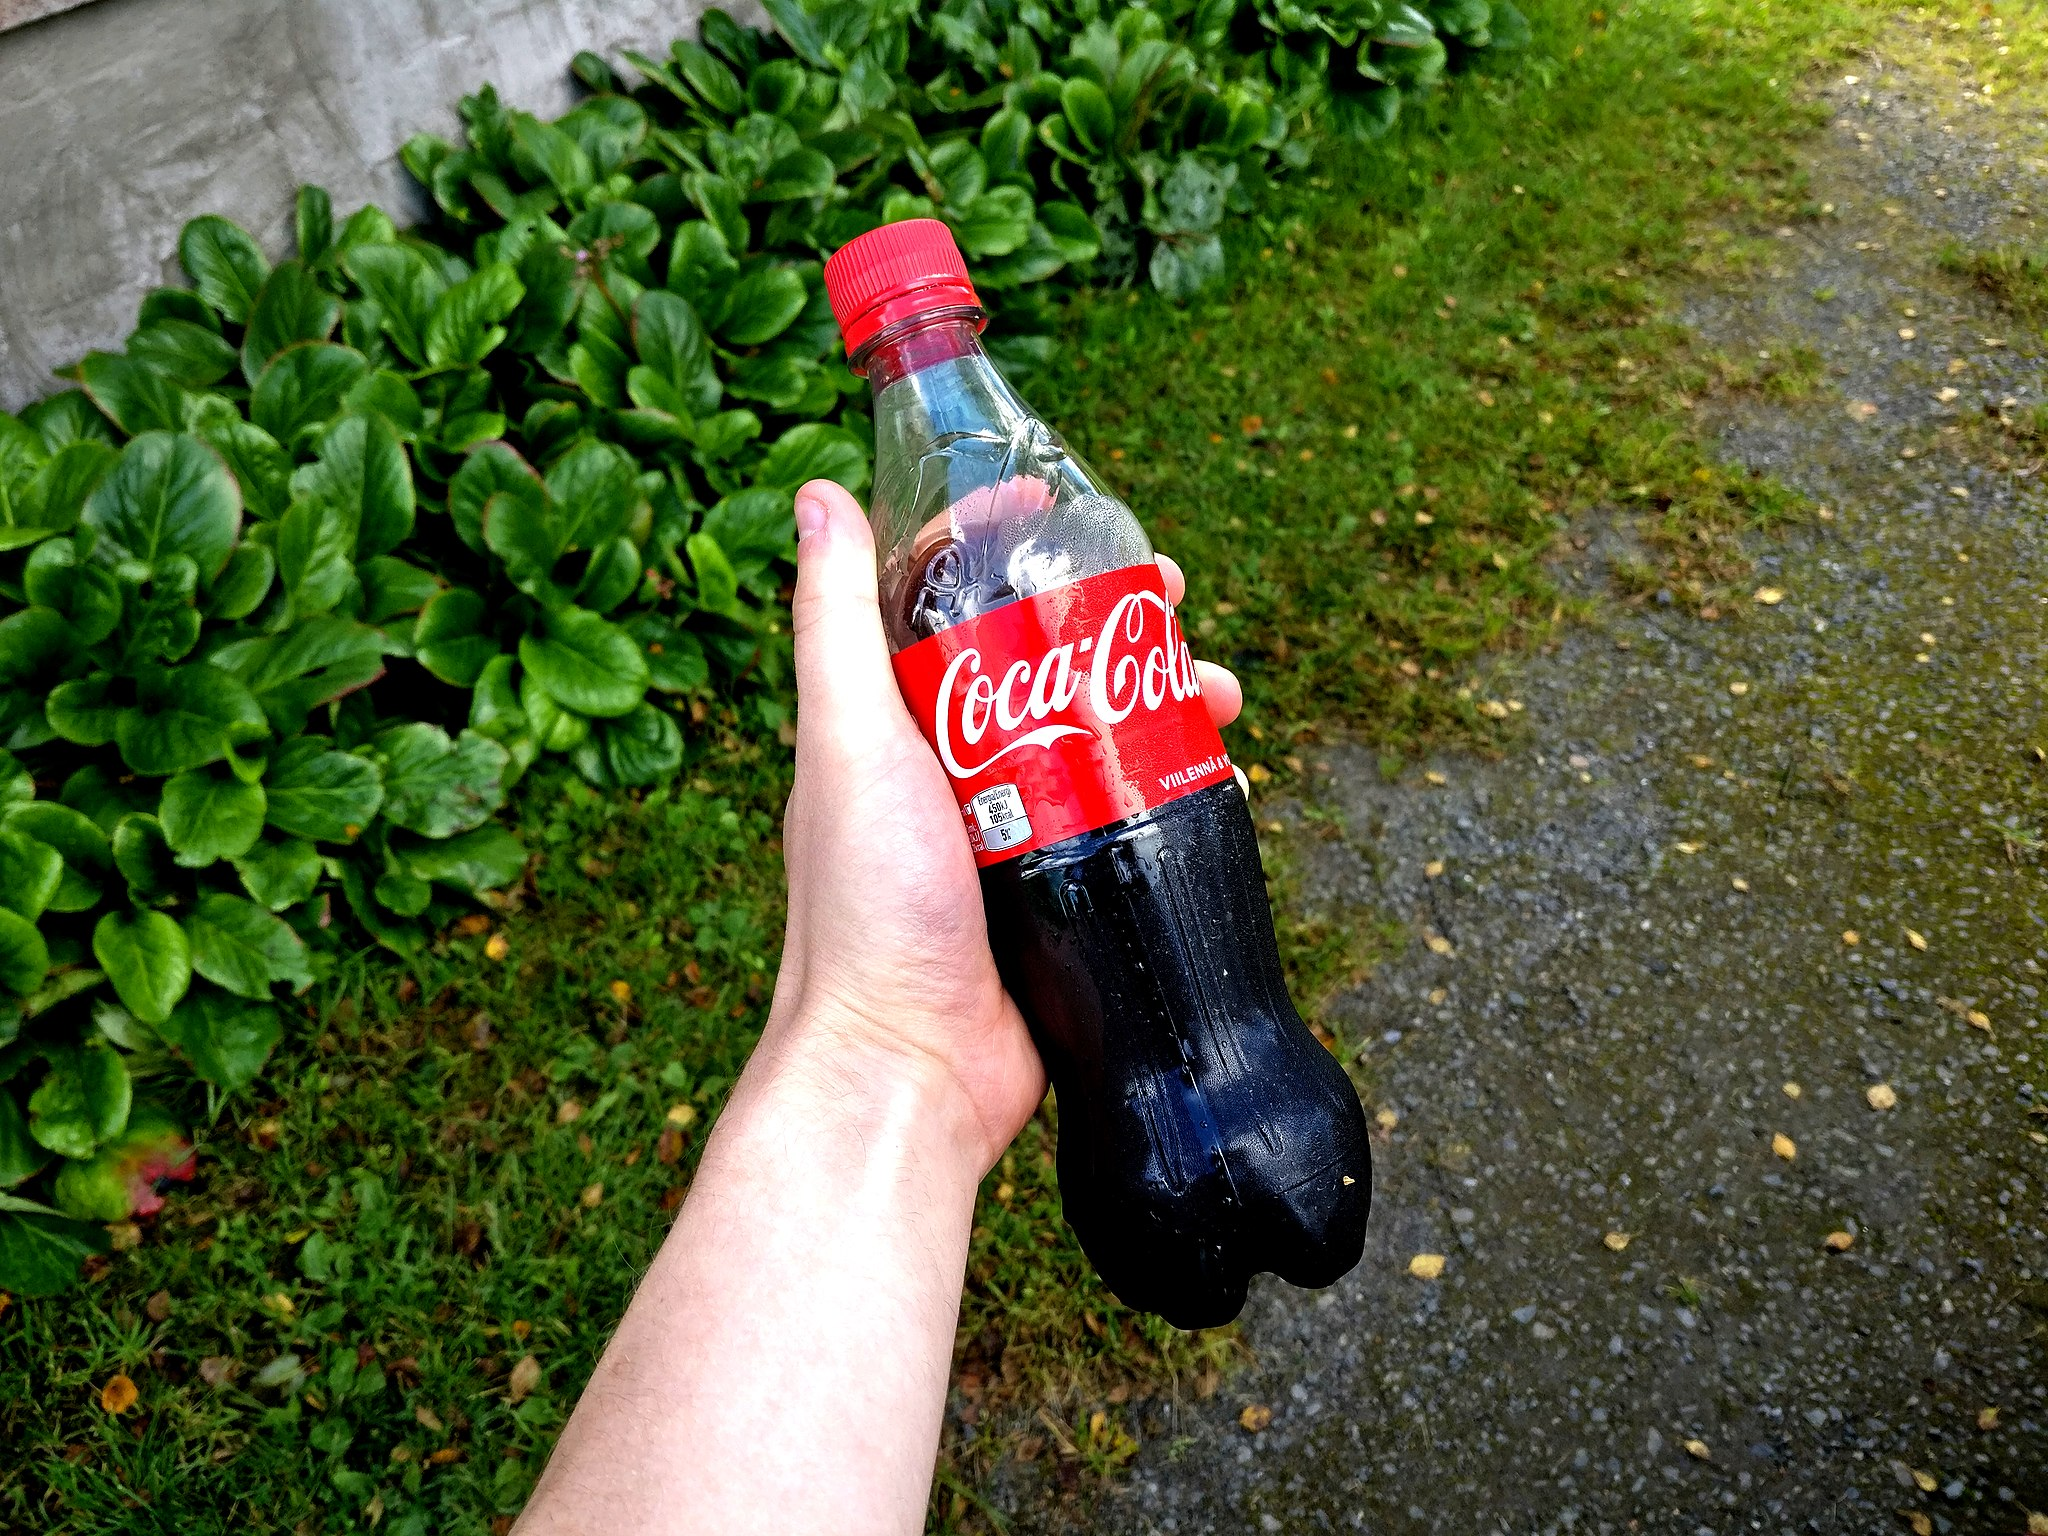 Coca Cola for use in the garden